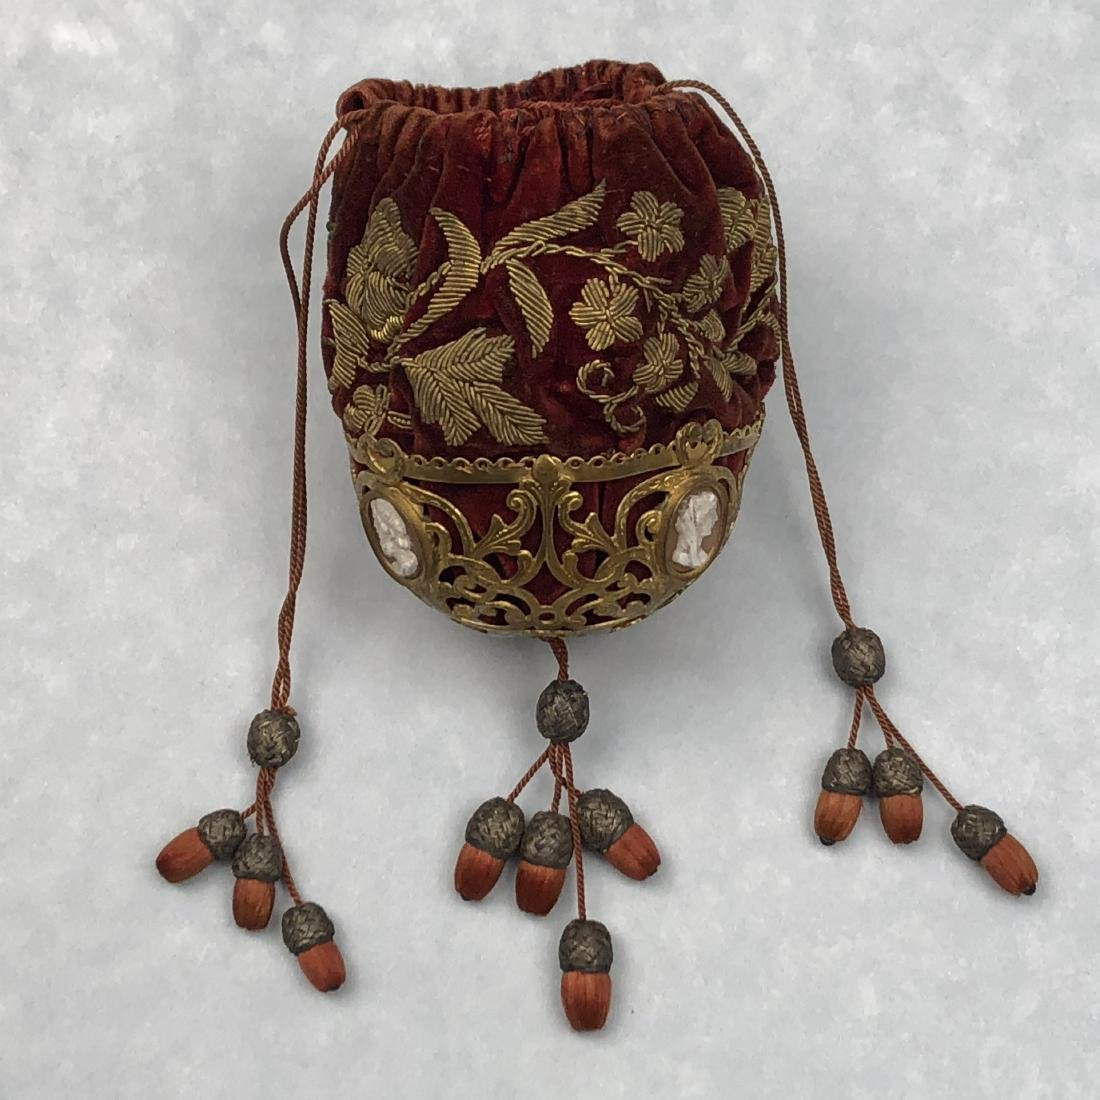 UNUSUAL VELVET PURSE with METALLIC BASE and CAMEOS, c.